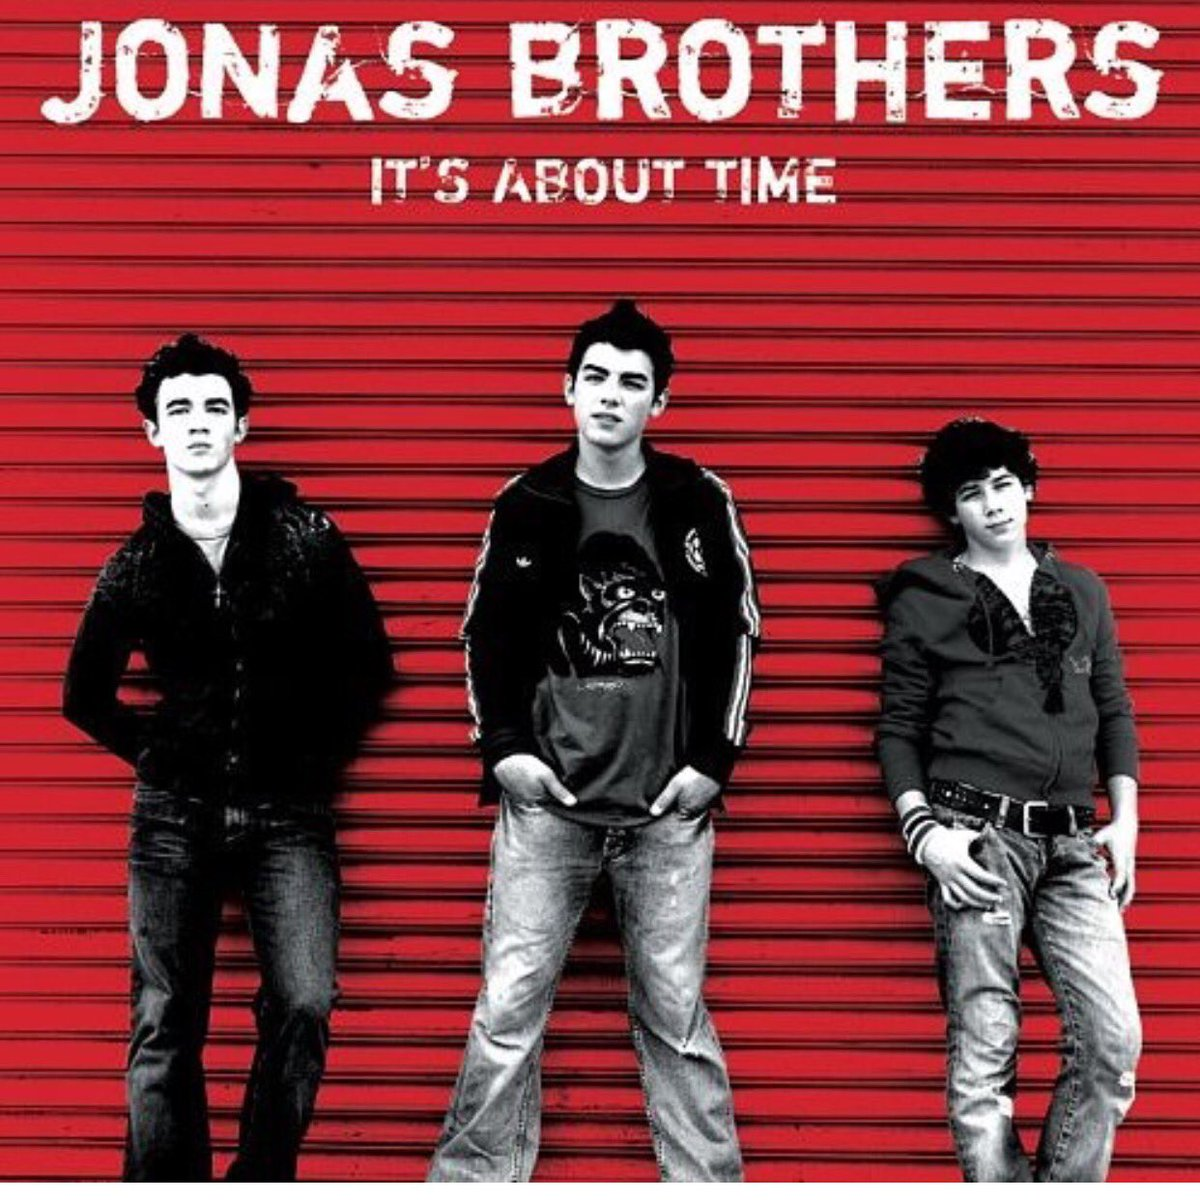 10 years ago today my sons released #ItsAboutTime.  Thank you for supporting them through the years! https://t.co/uS0mF848yS